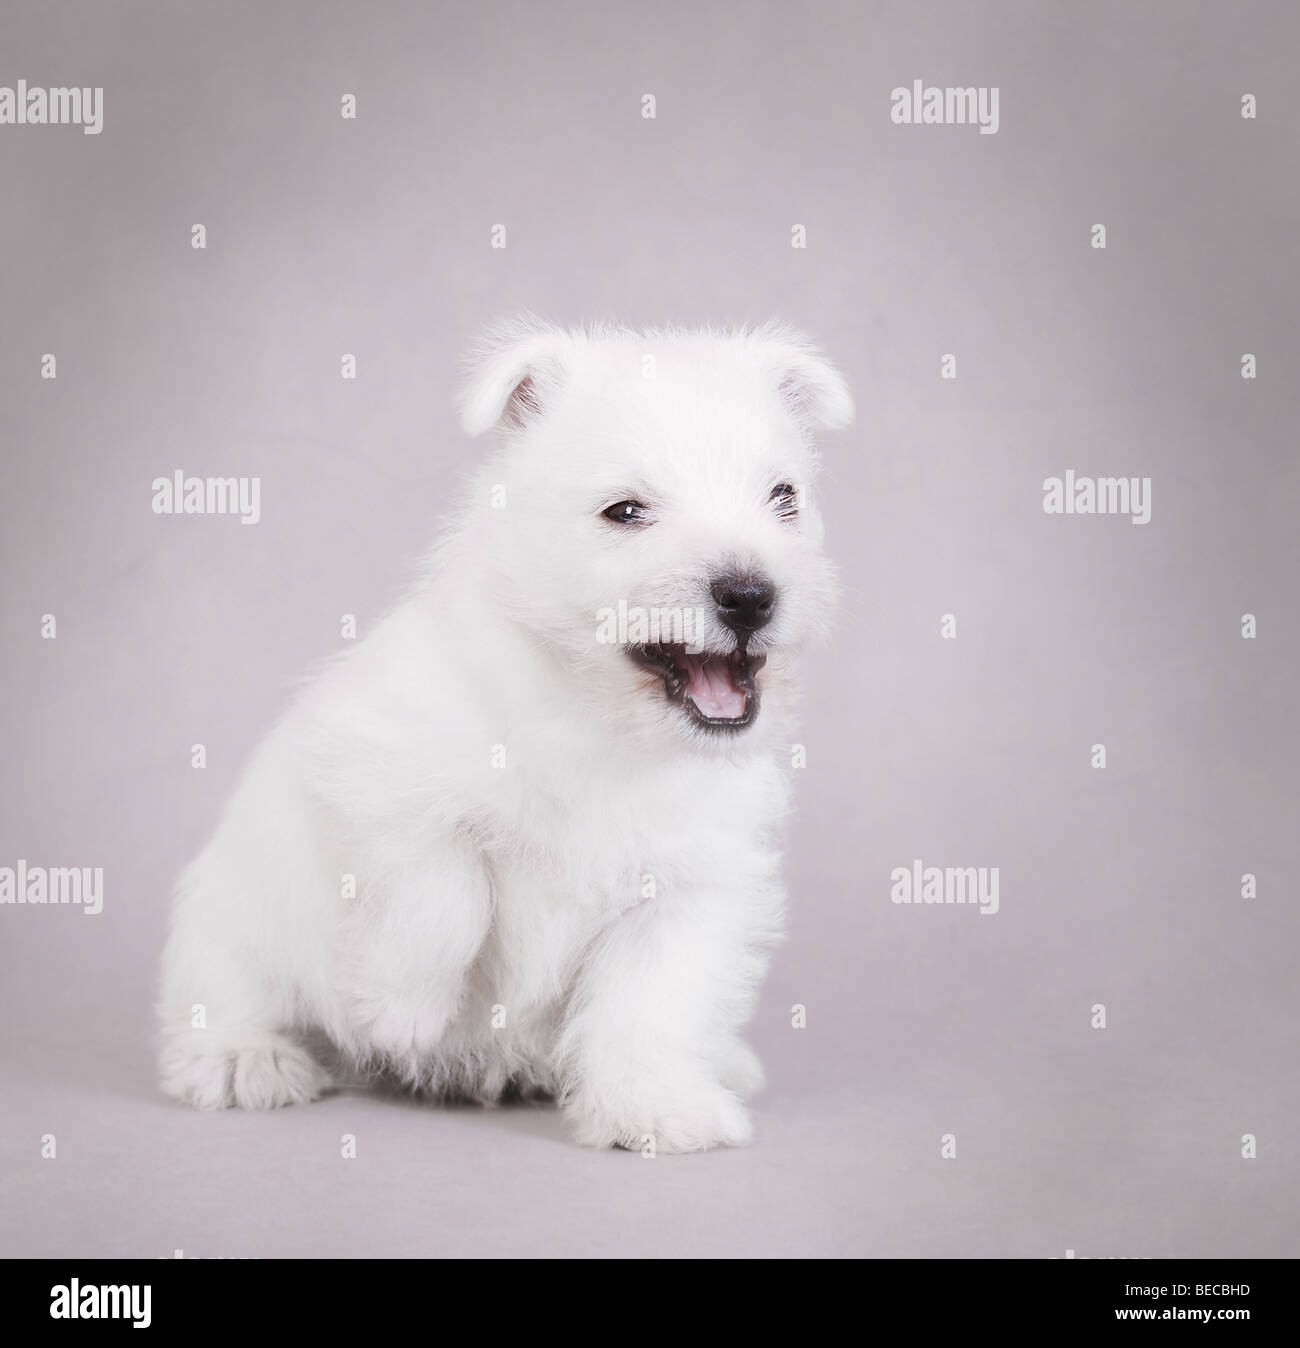 Angry West Highland White Terrier puppy portrait - Stock Image